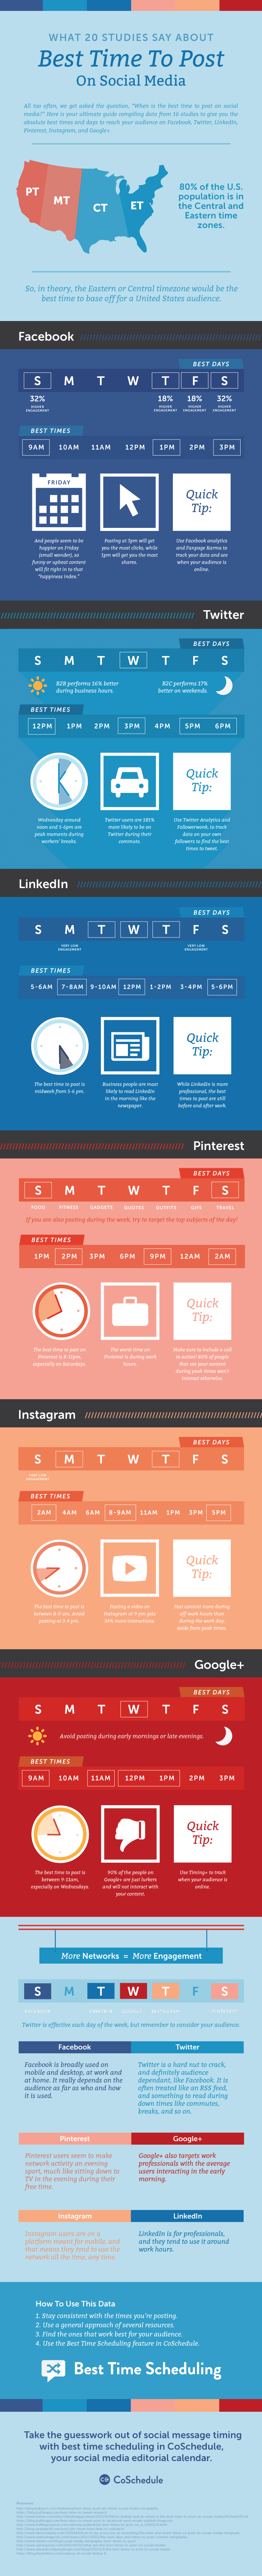 The best times to post on social media is one of the first things we look into for our clients. Although we work off of an algorithm that is tailored for our clients for us to post at optimal times based on our clients' audience, we also follow some of these steps to maximize on a great thing! Check it out. https://virtualpea.com/best-times-to-post-on-social-media